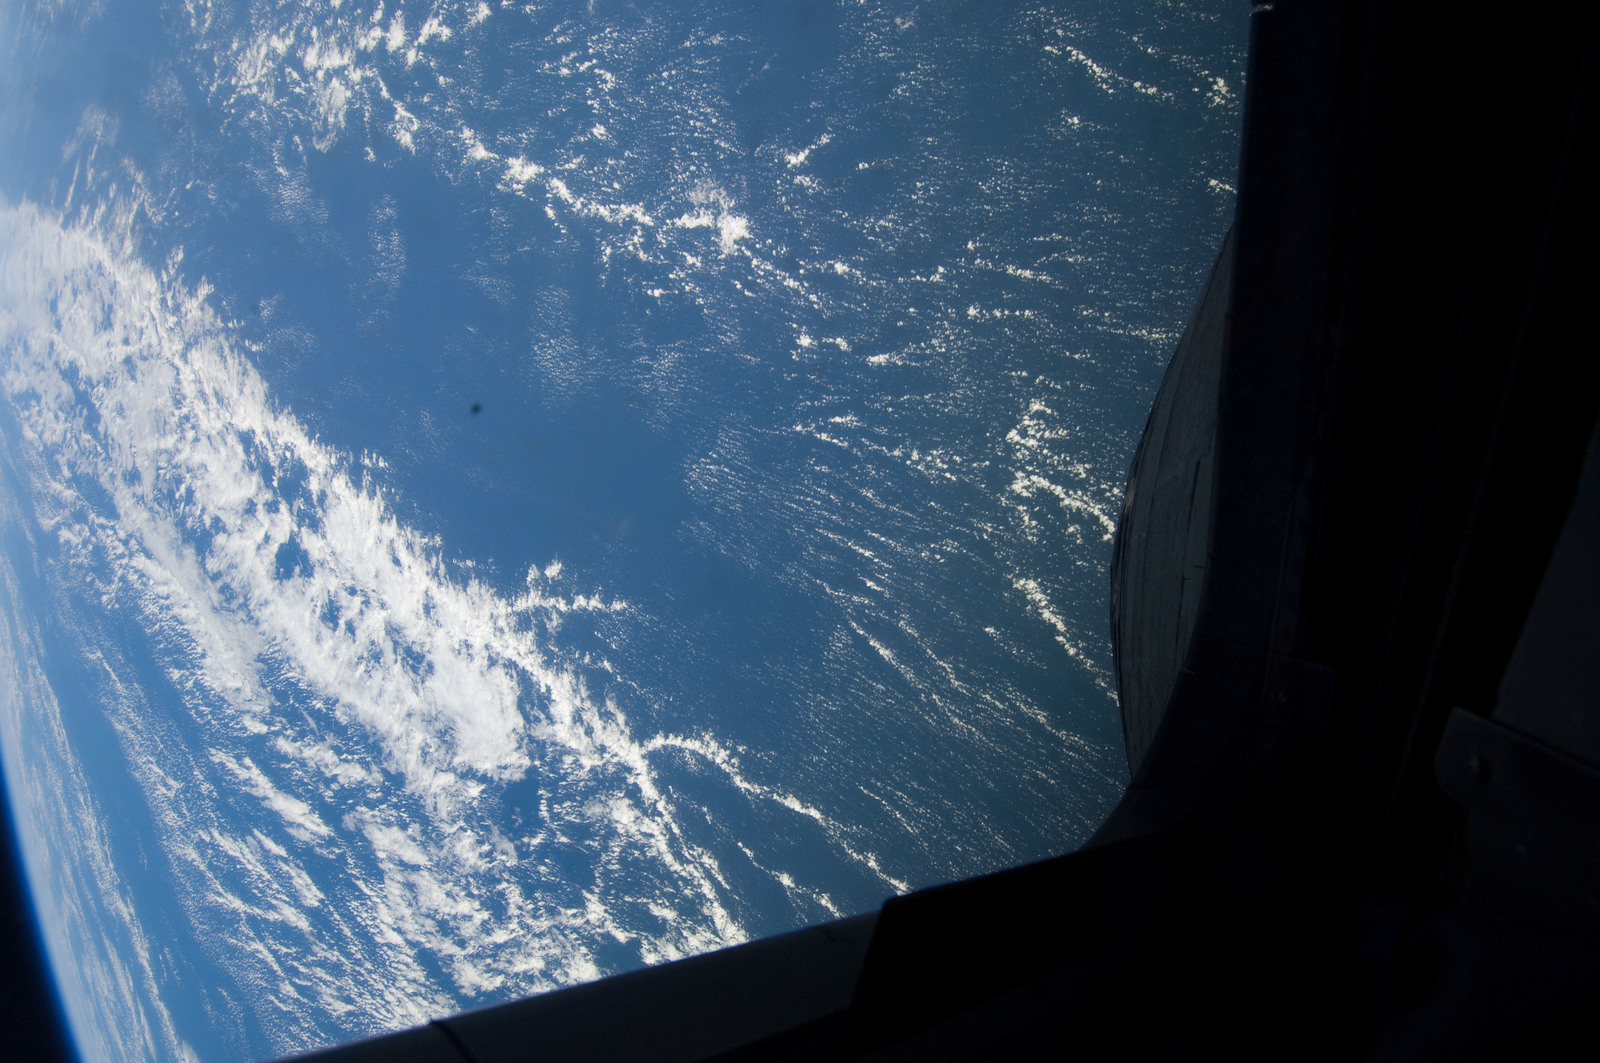 s133E006937 - STS-133 - Earth Observation taken by the STS-133 crew